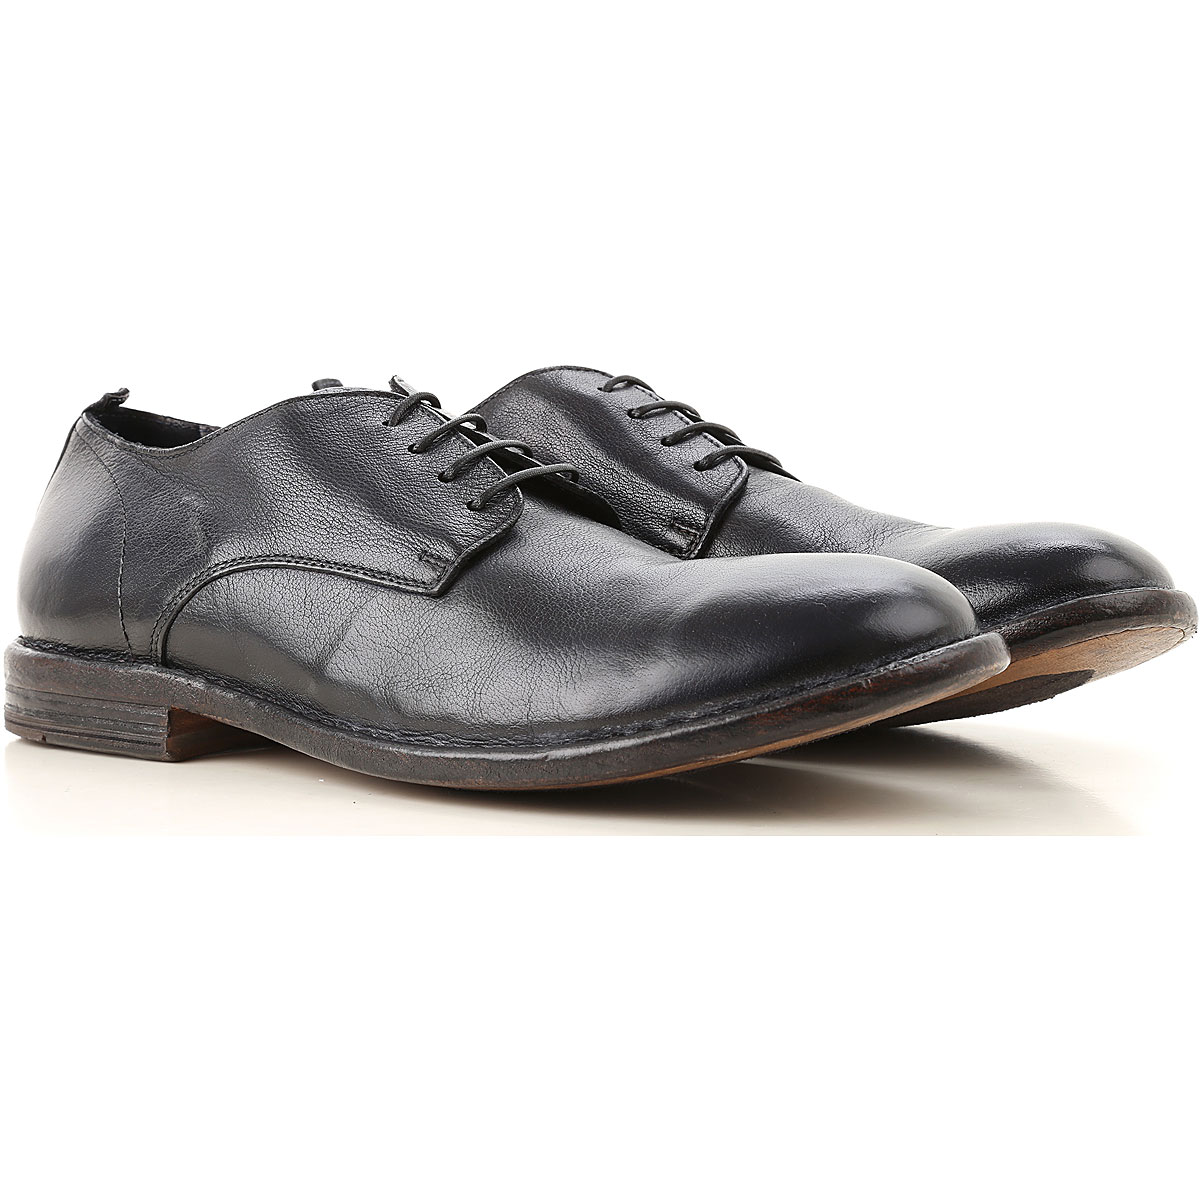 Image of Moma Lace Up Shoes for Men Oxfords, Derbies and Brogues, Black, Leather, 2017, 10 7.5 8 9